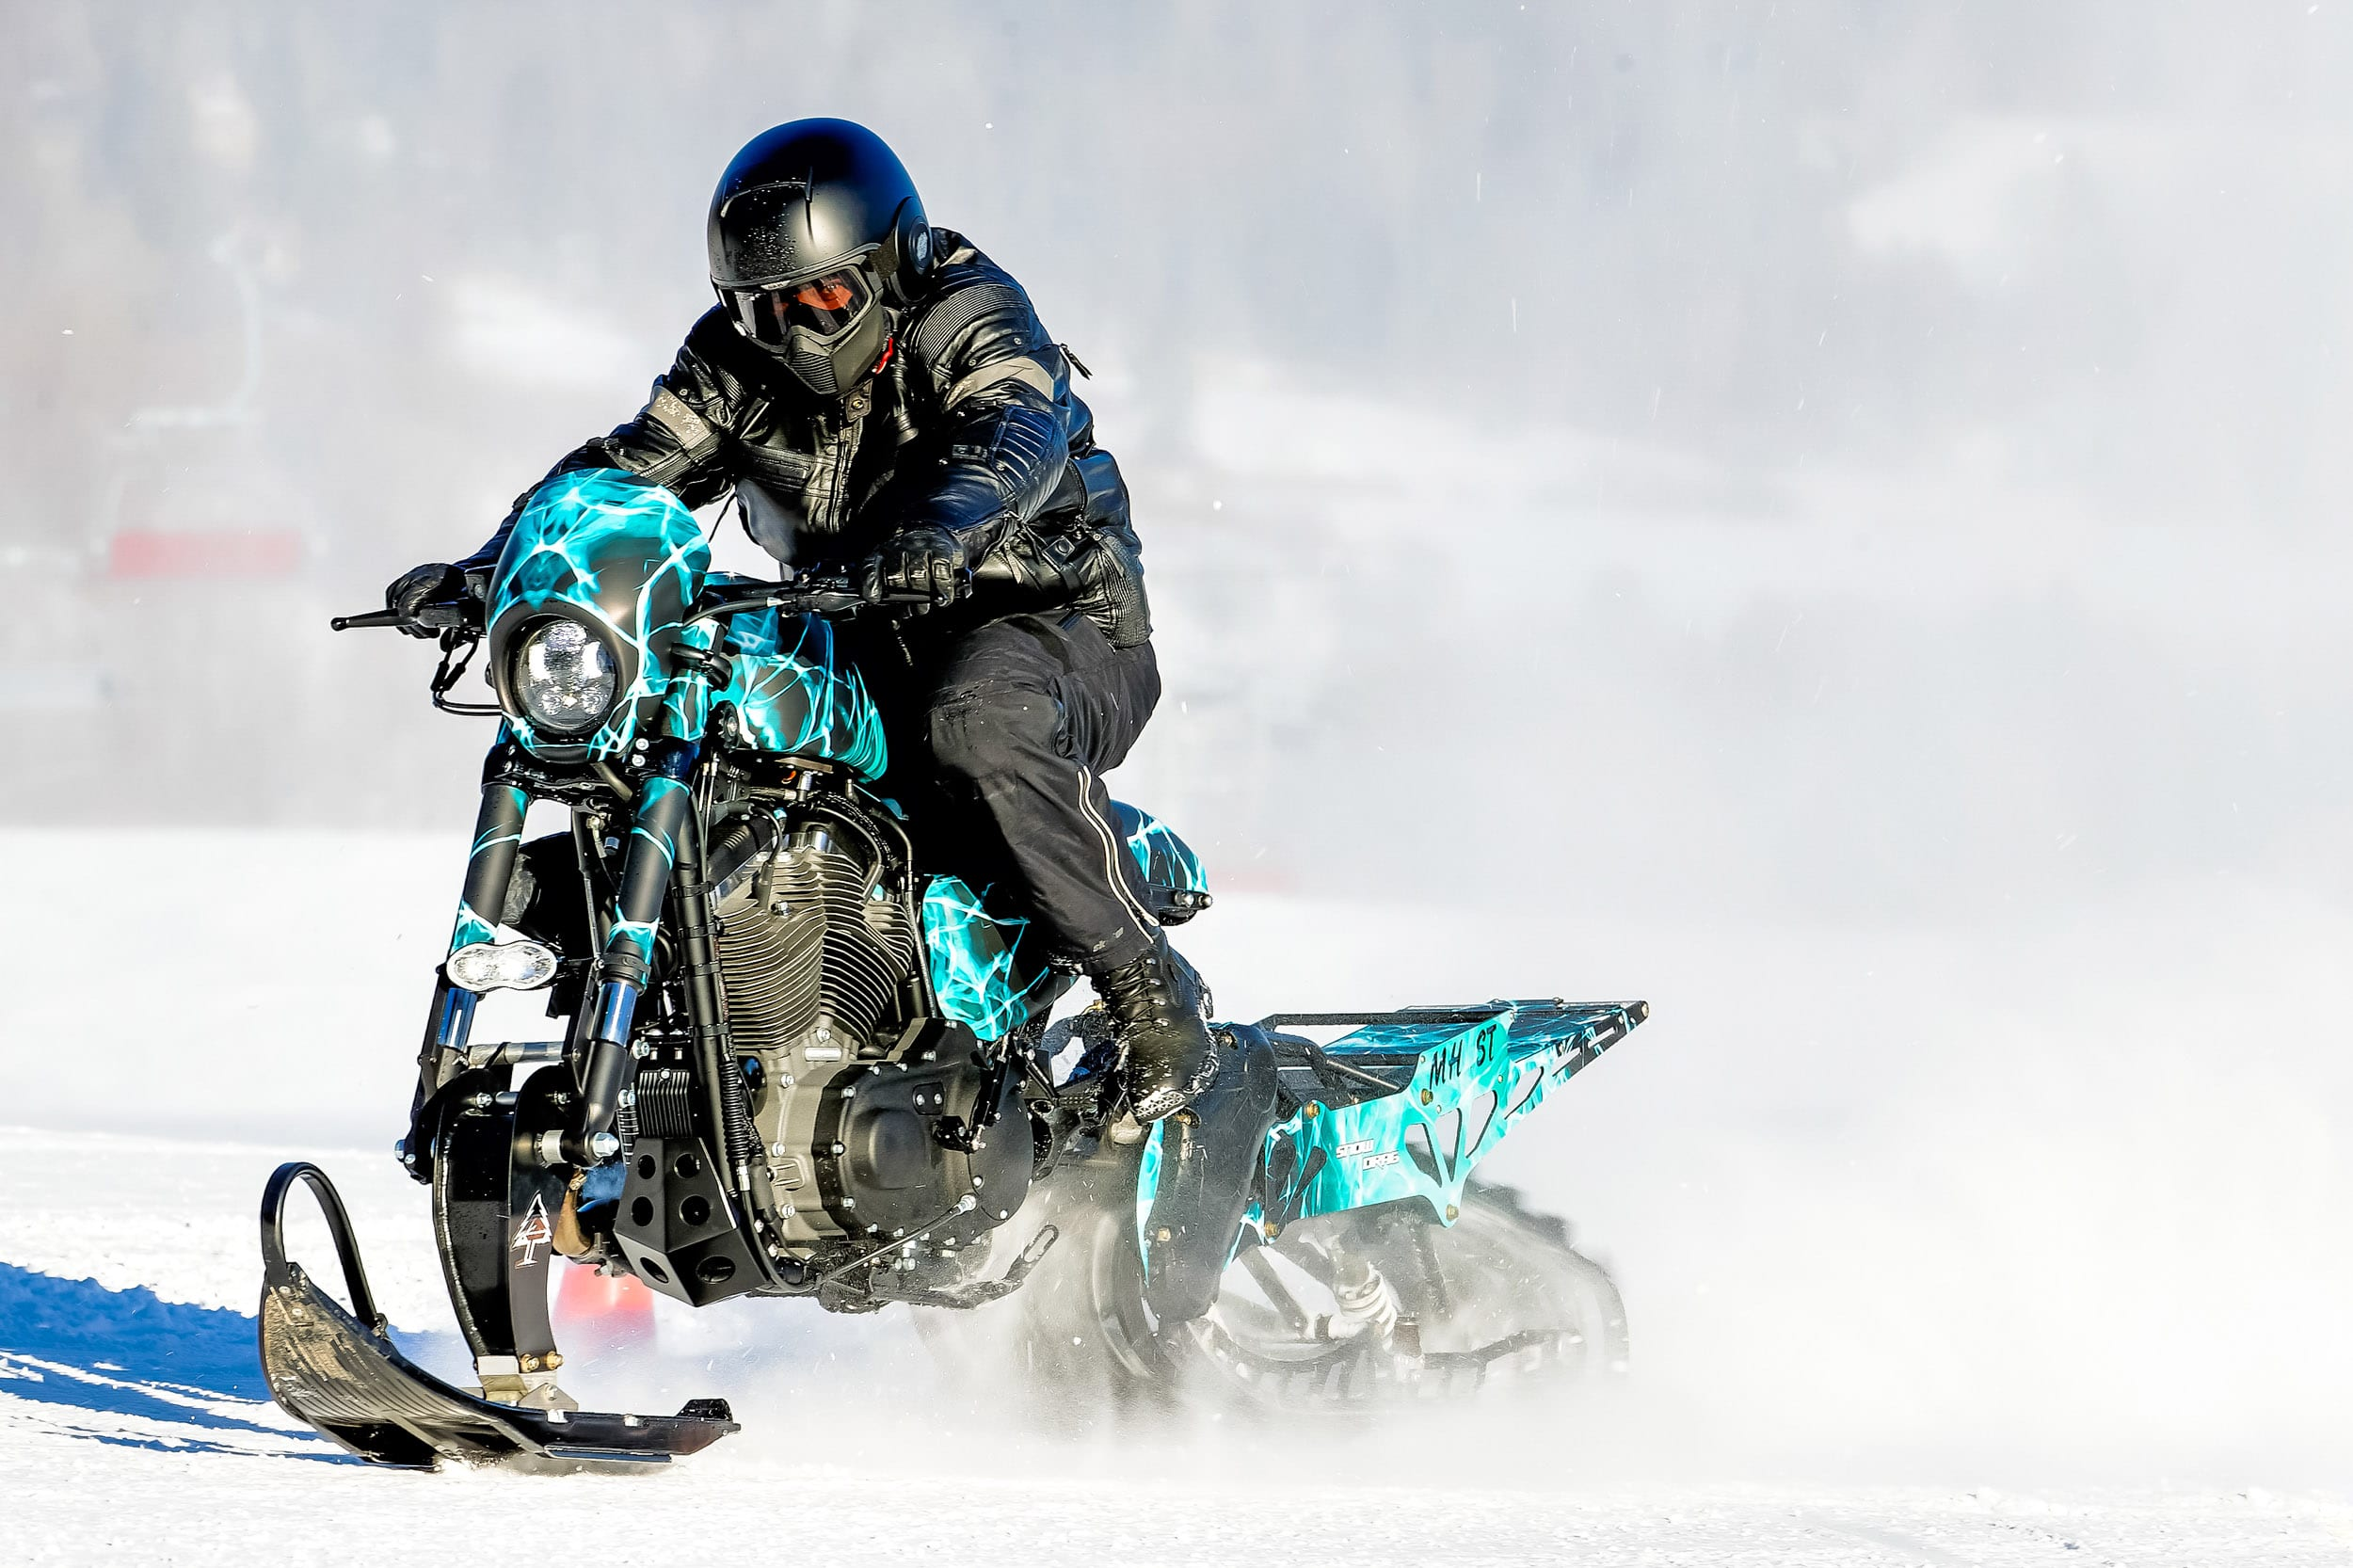 Harley Davidson snow bike 2017